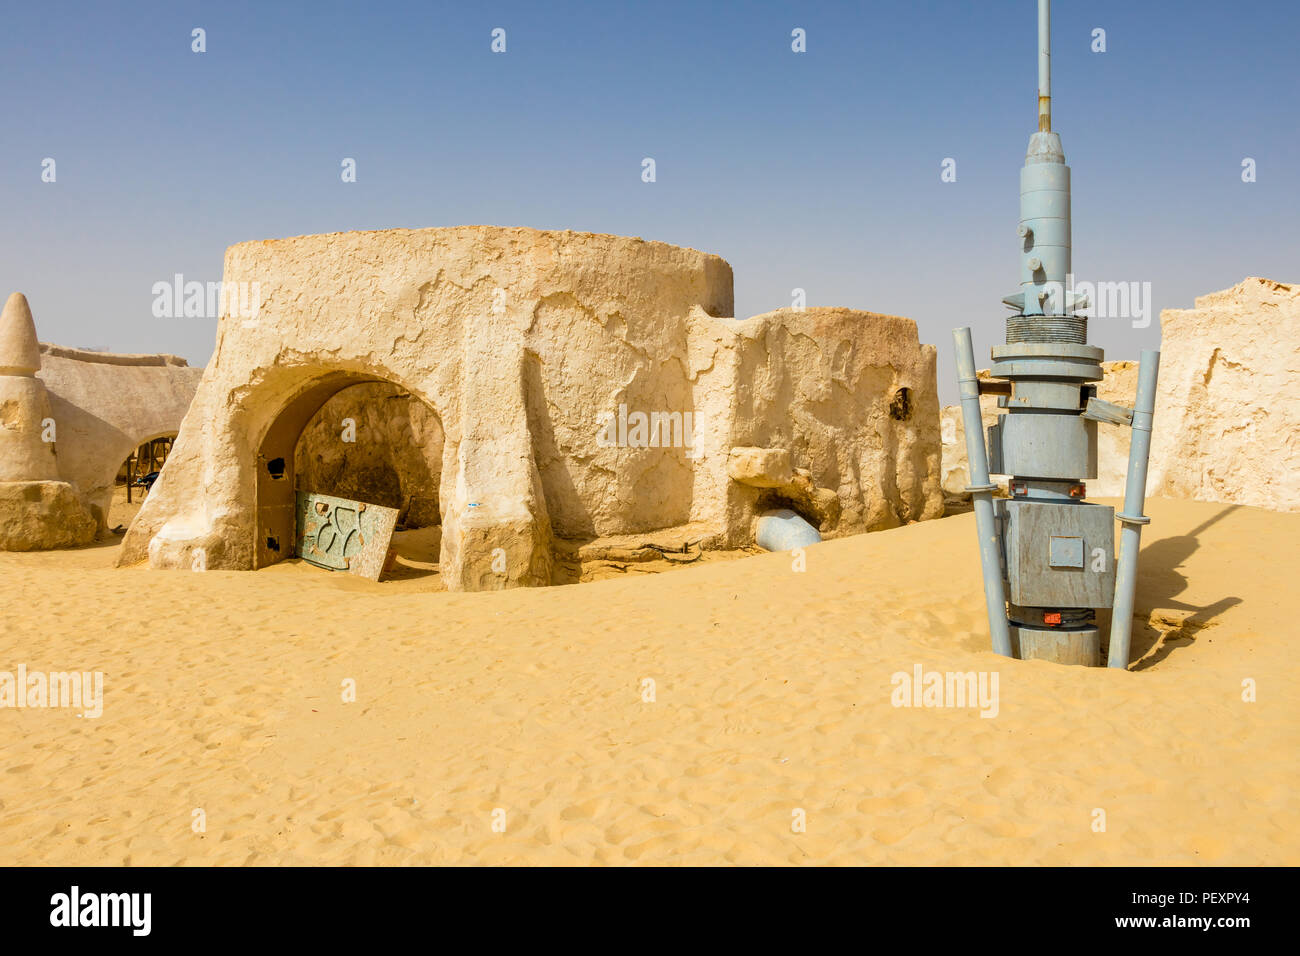 Old Star Wars set building in the Sahara desert near Naftah, Tunisia - Stock Image